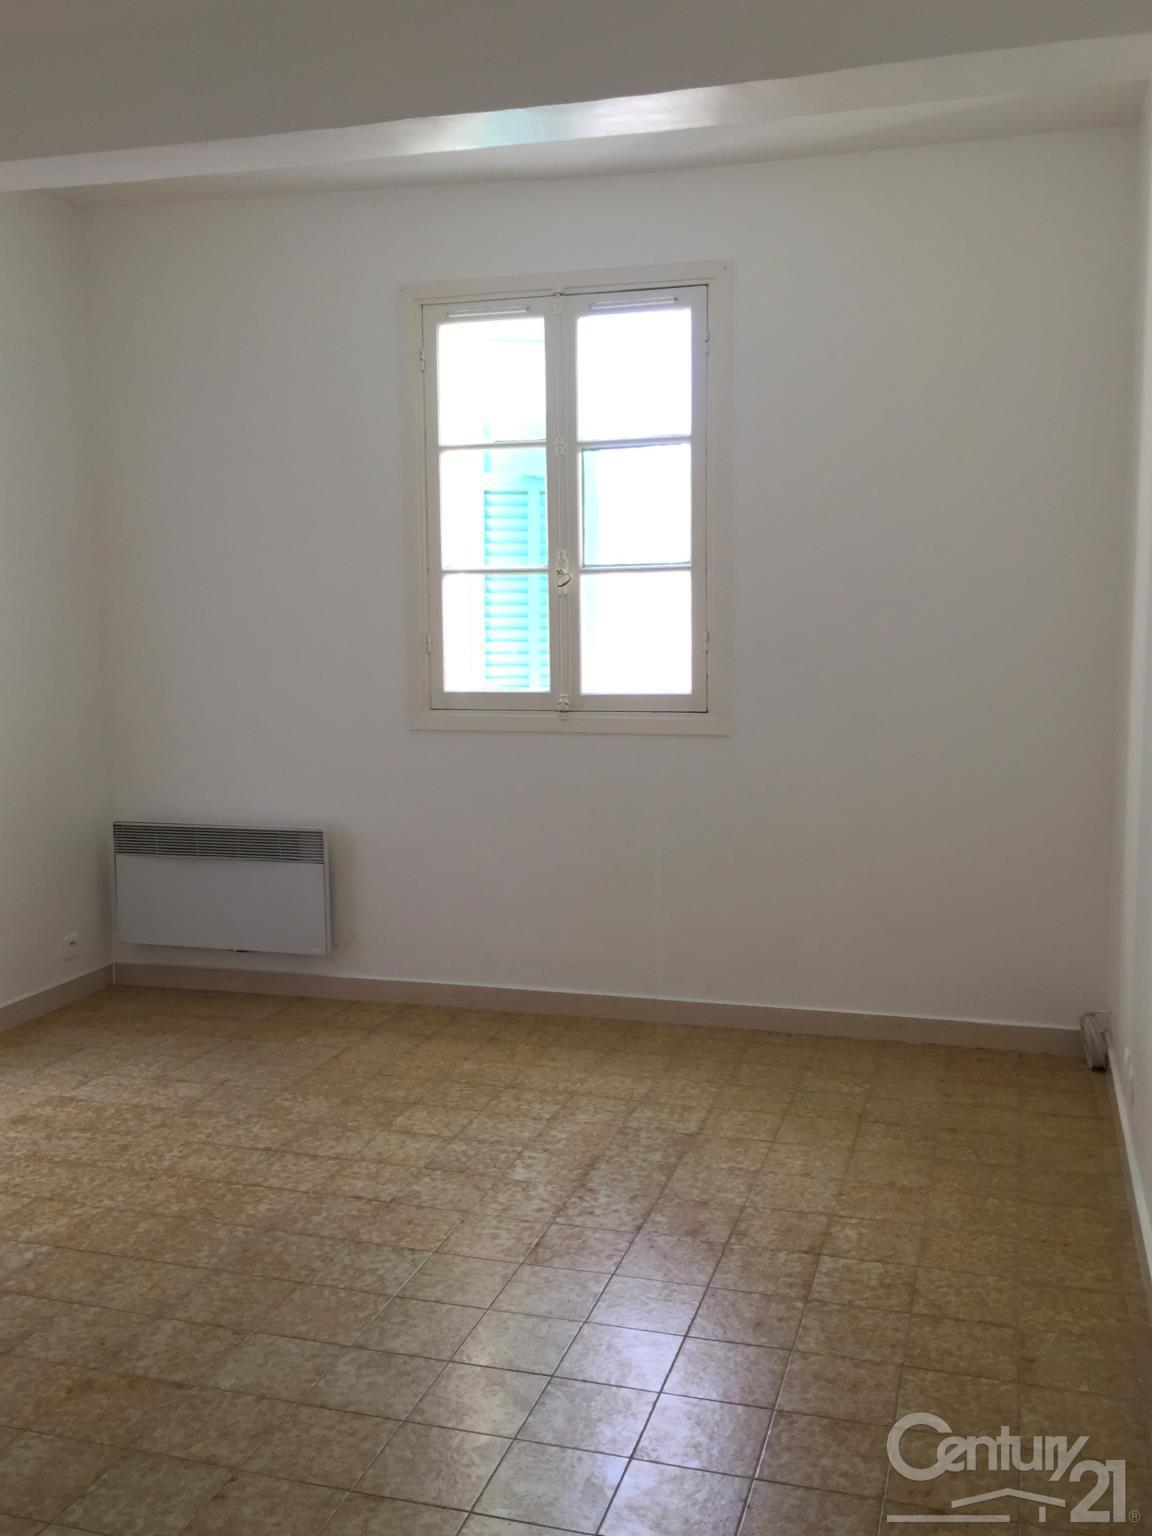 Appartement f2 2 pi ces louer nice 06000 ref 1218 for Appartement meuble a louer a nice